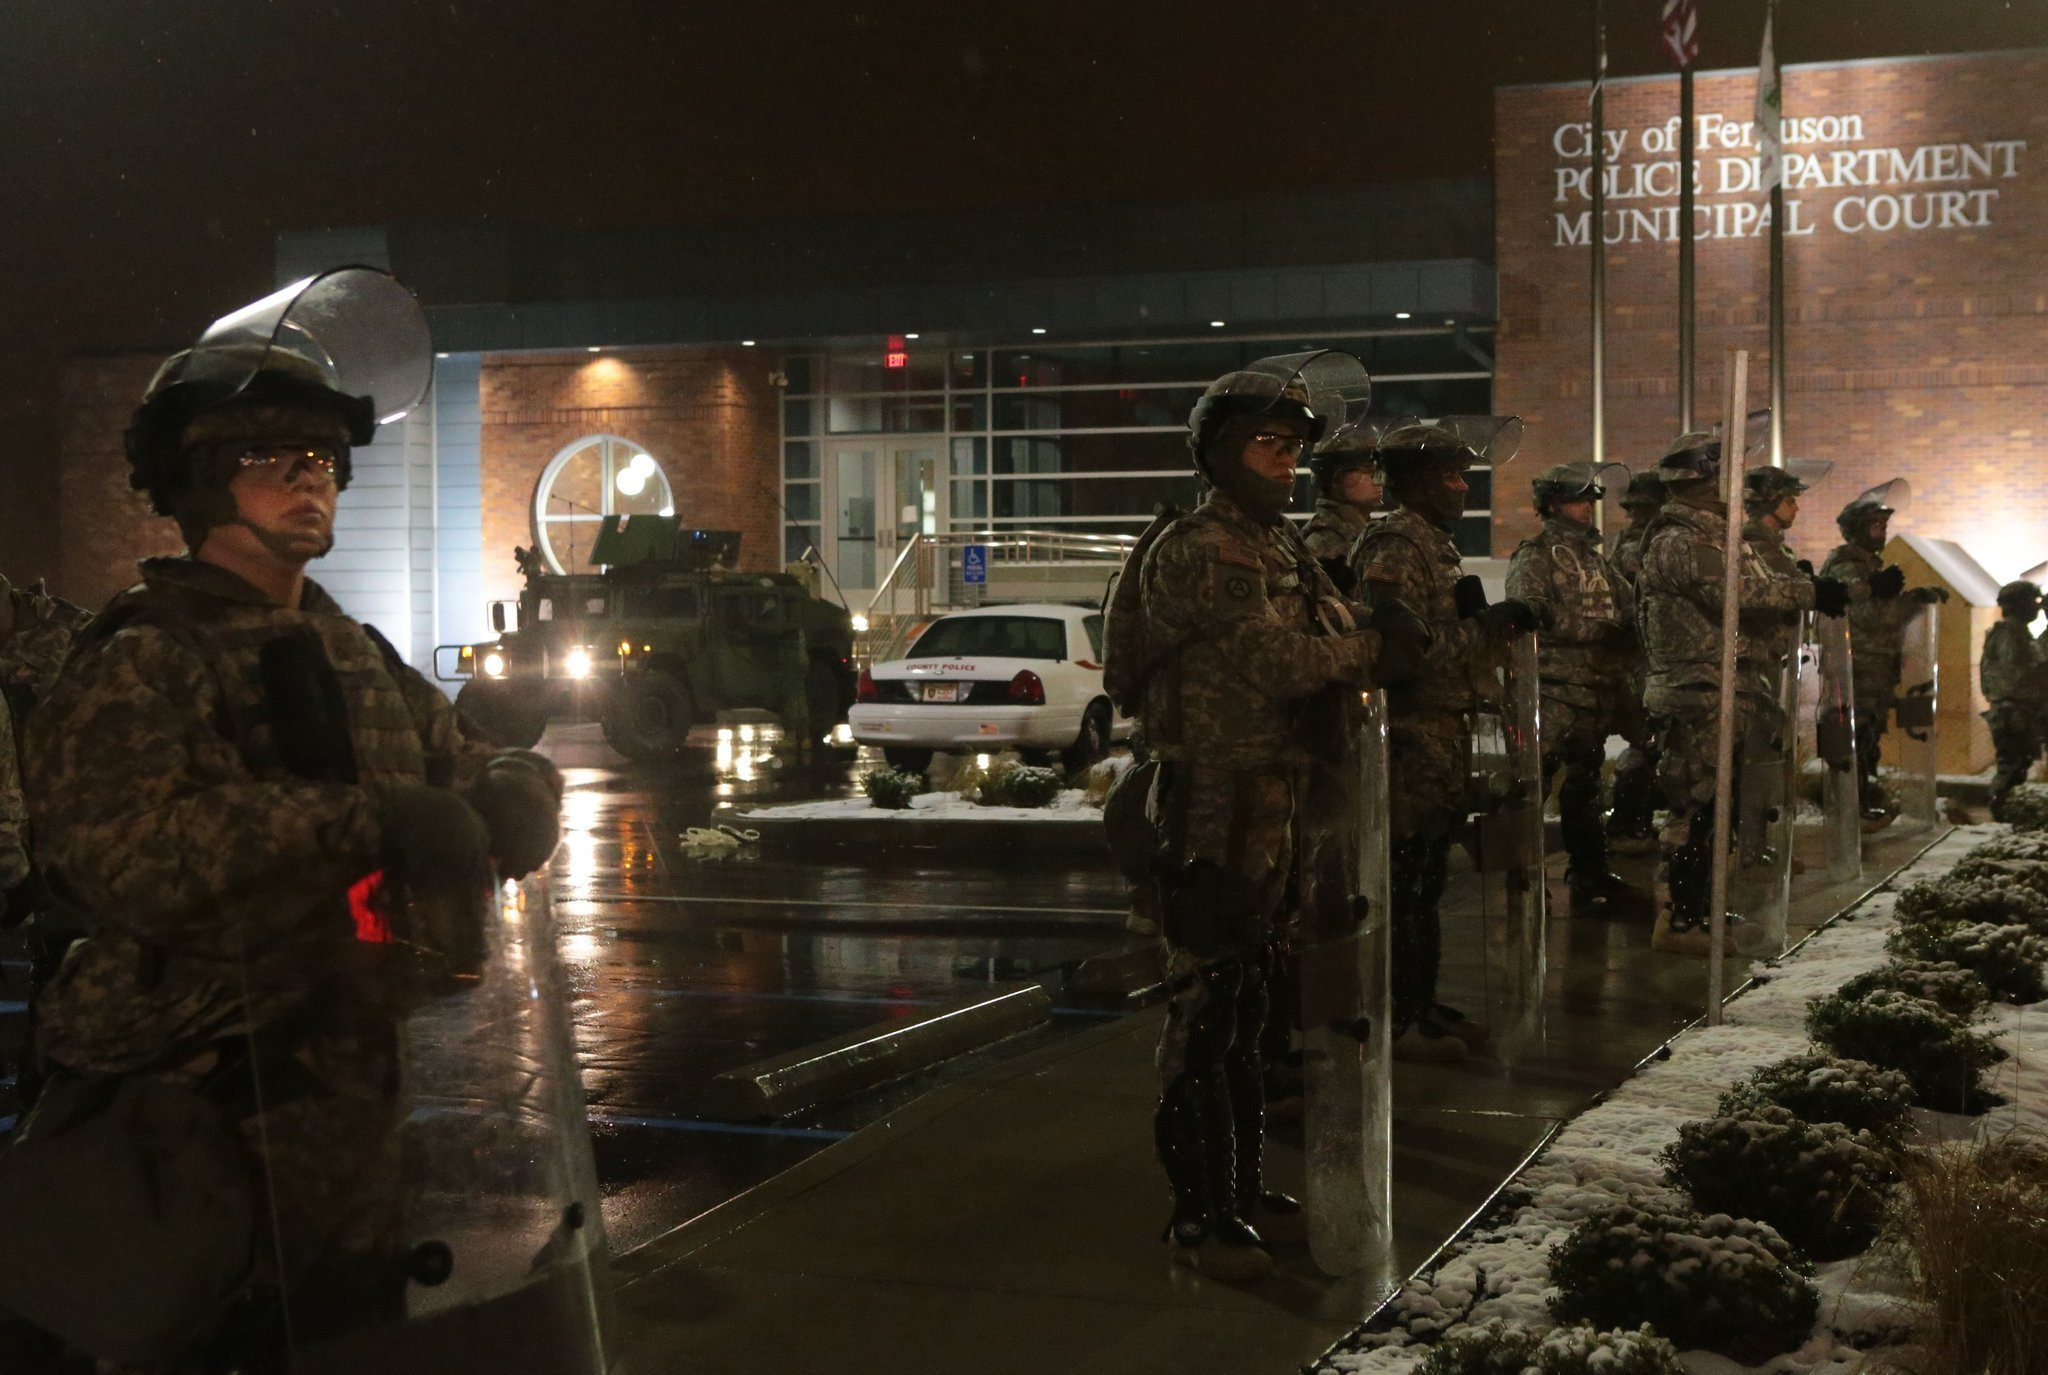 Ferguson forecast: Cold, wet, snow with a chance of calm